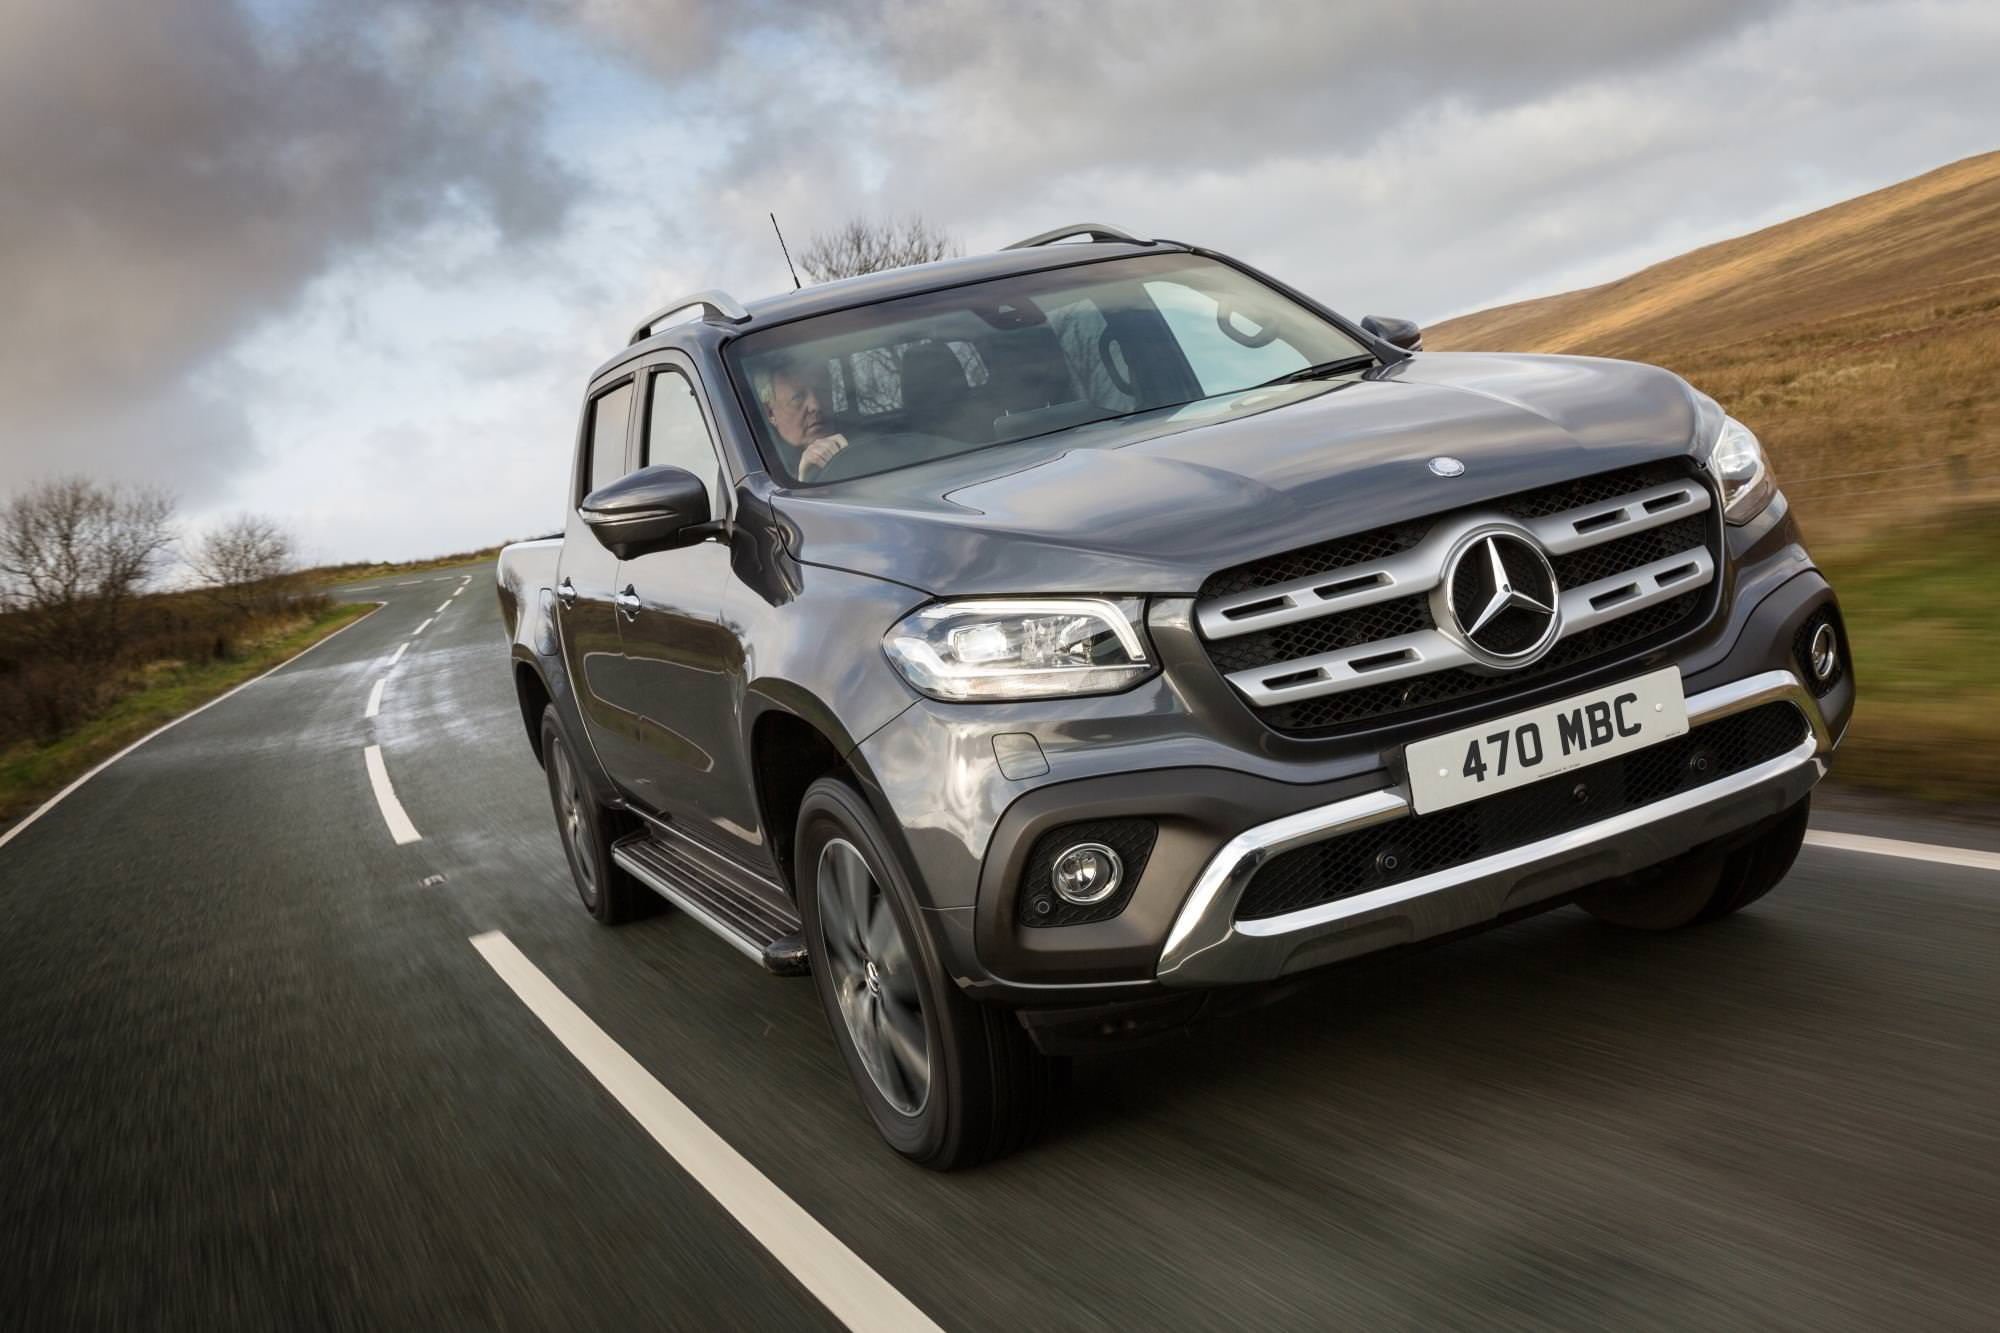 image of a grey mercedes-benz x class car exterior